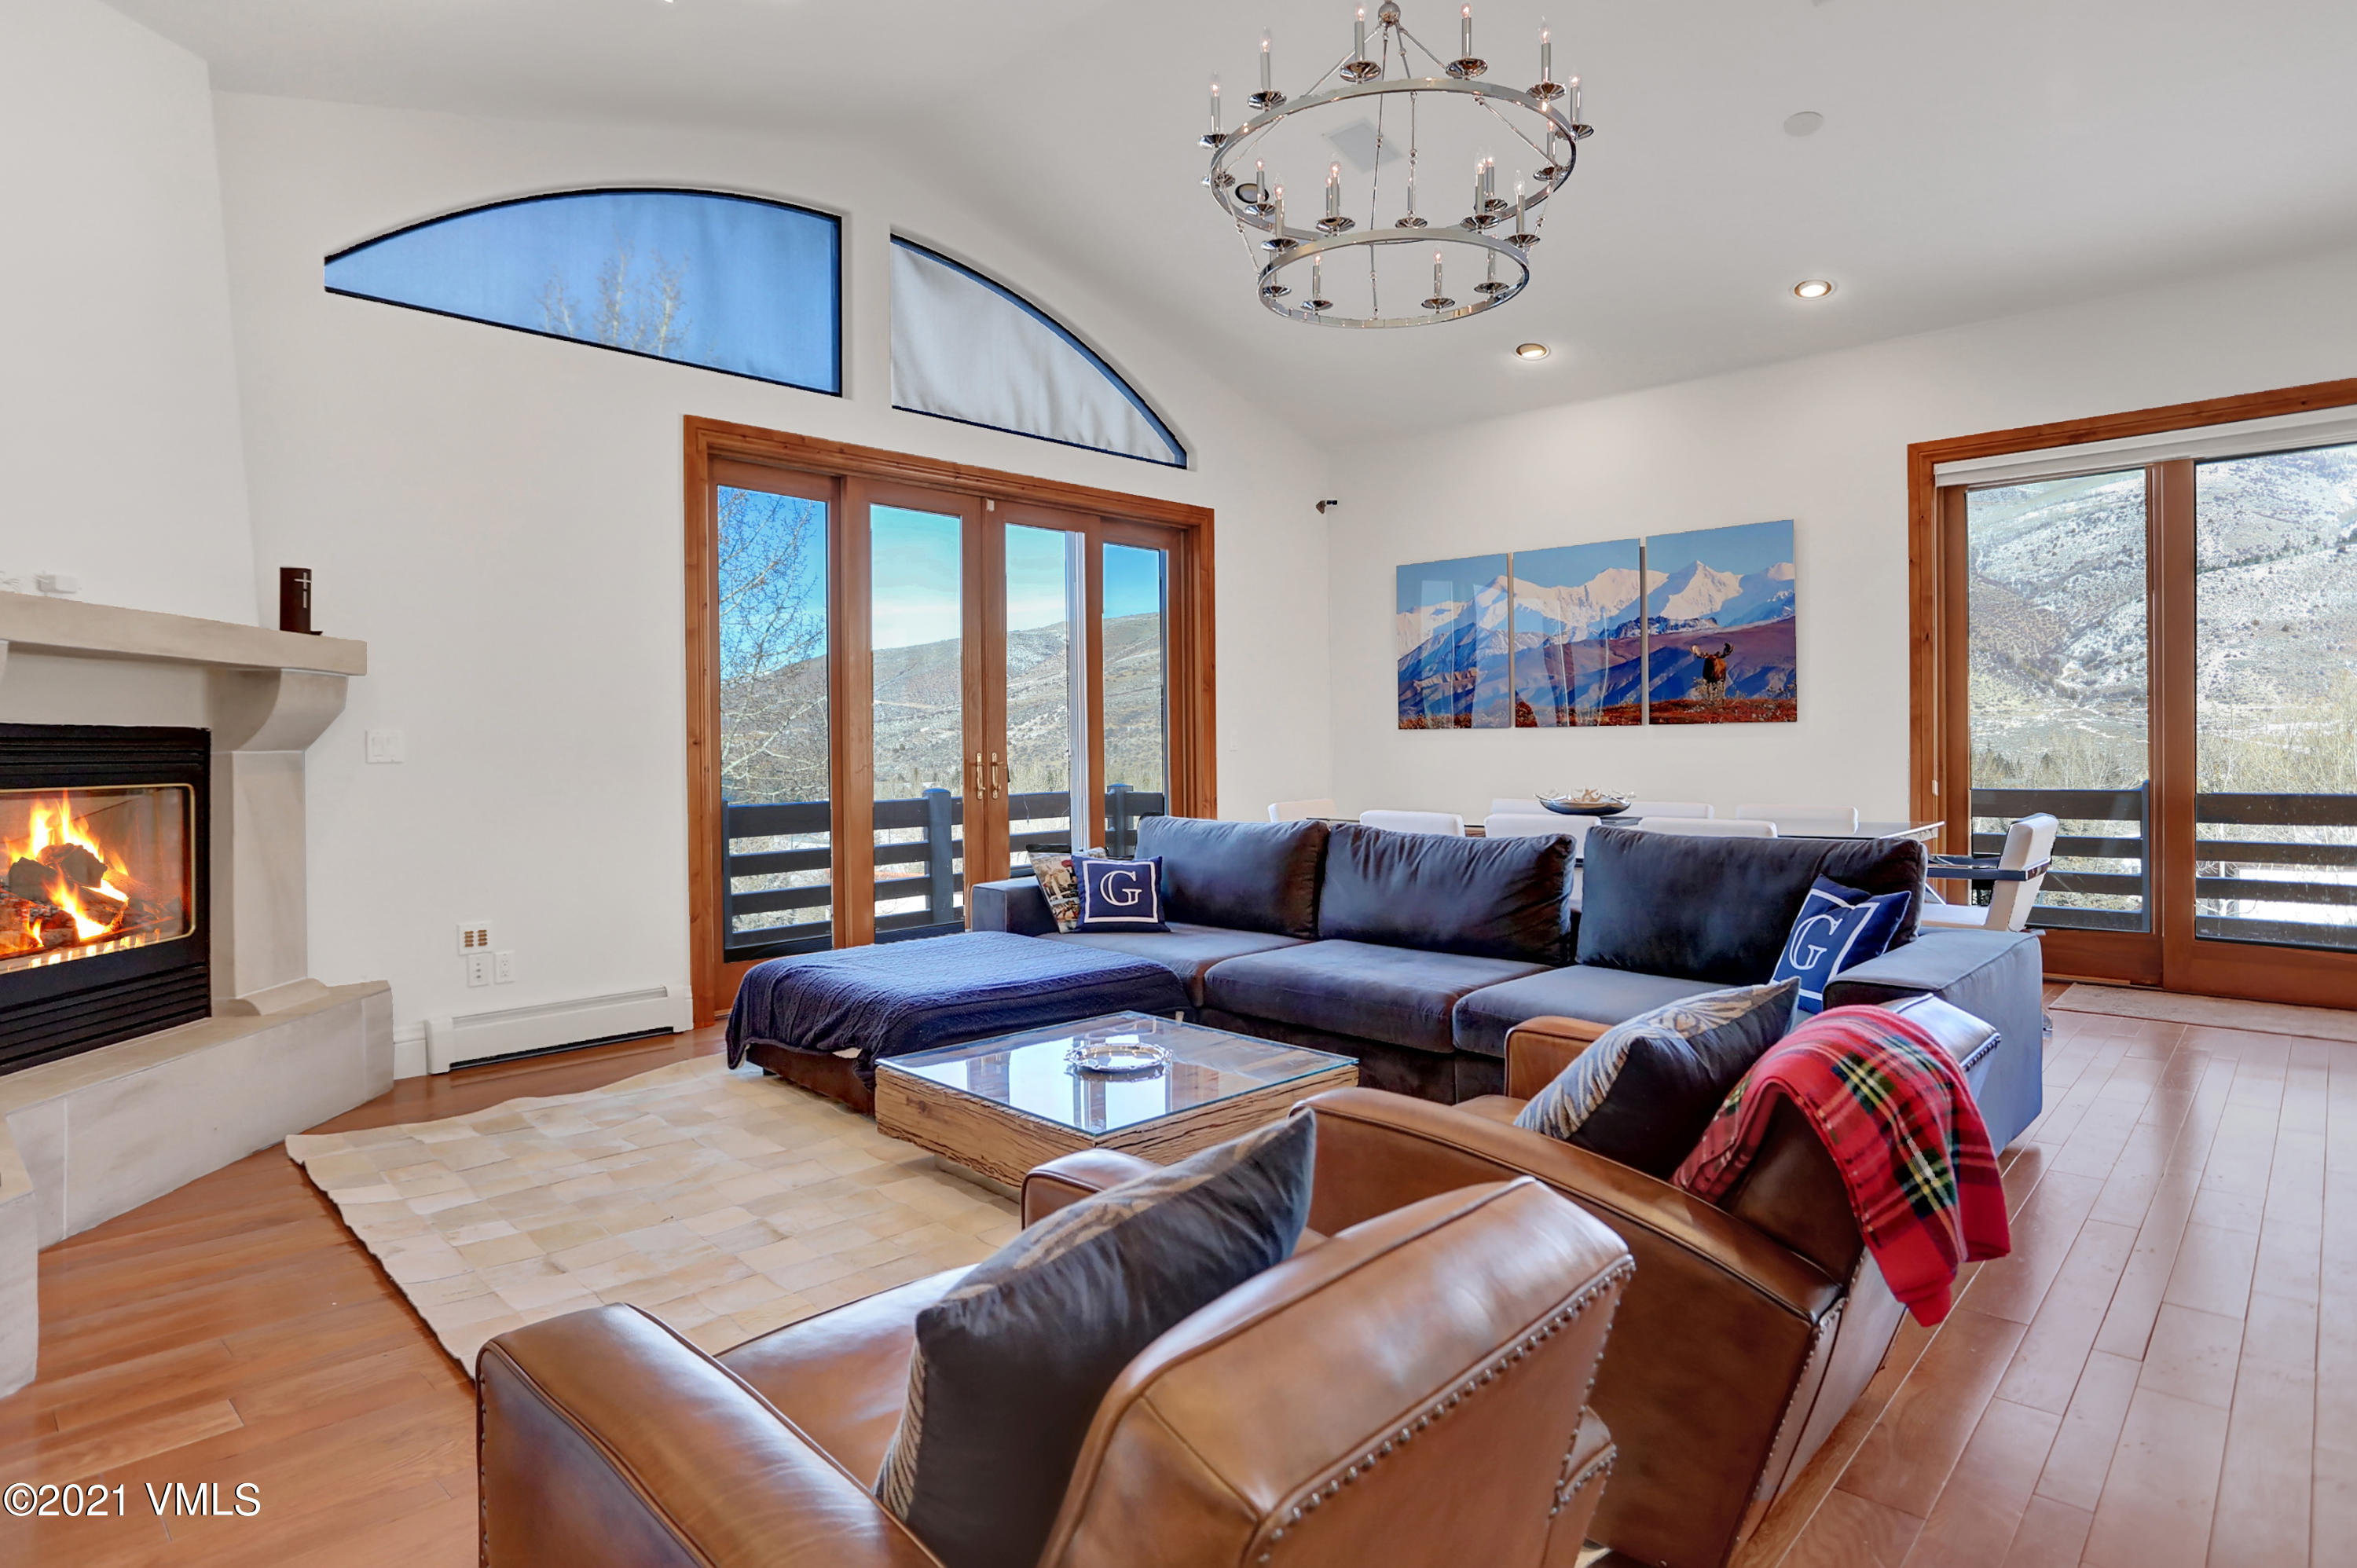 Incredible Duplex in Eagle-Vail on Whiskey Hill with a new mountain modern style. Great space layout with private back yard and deck. This home is walking or biking distance to Golf Clubhouse, Pool, Tennis etc. This is a home you need to see today!